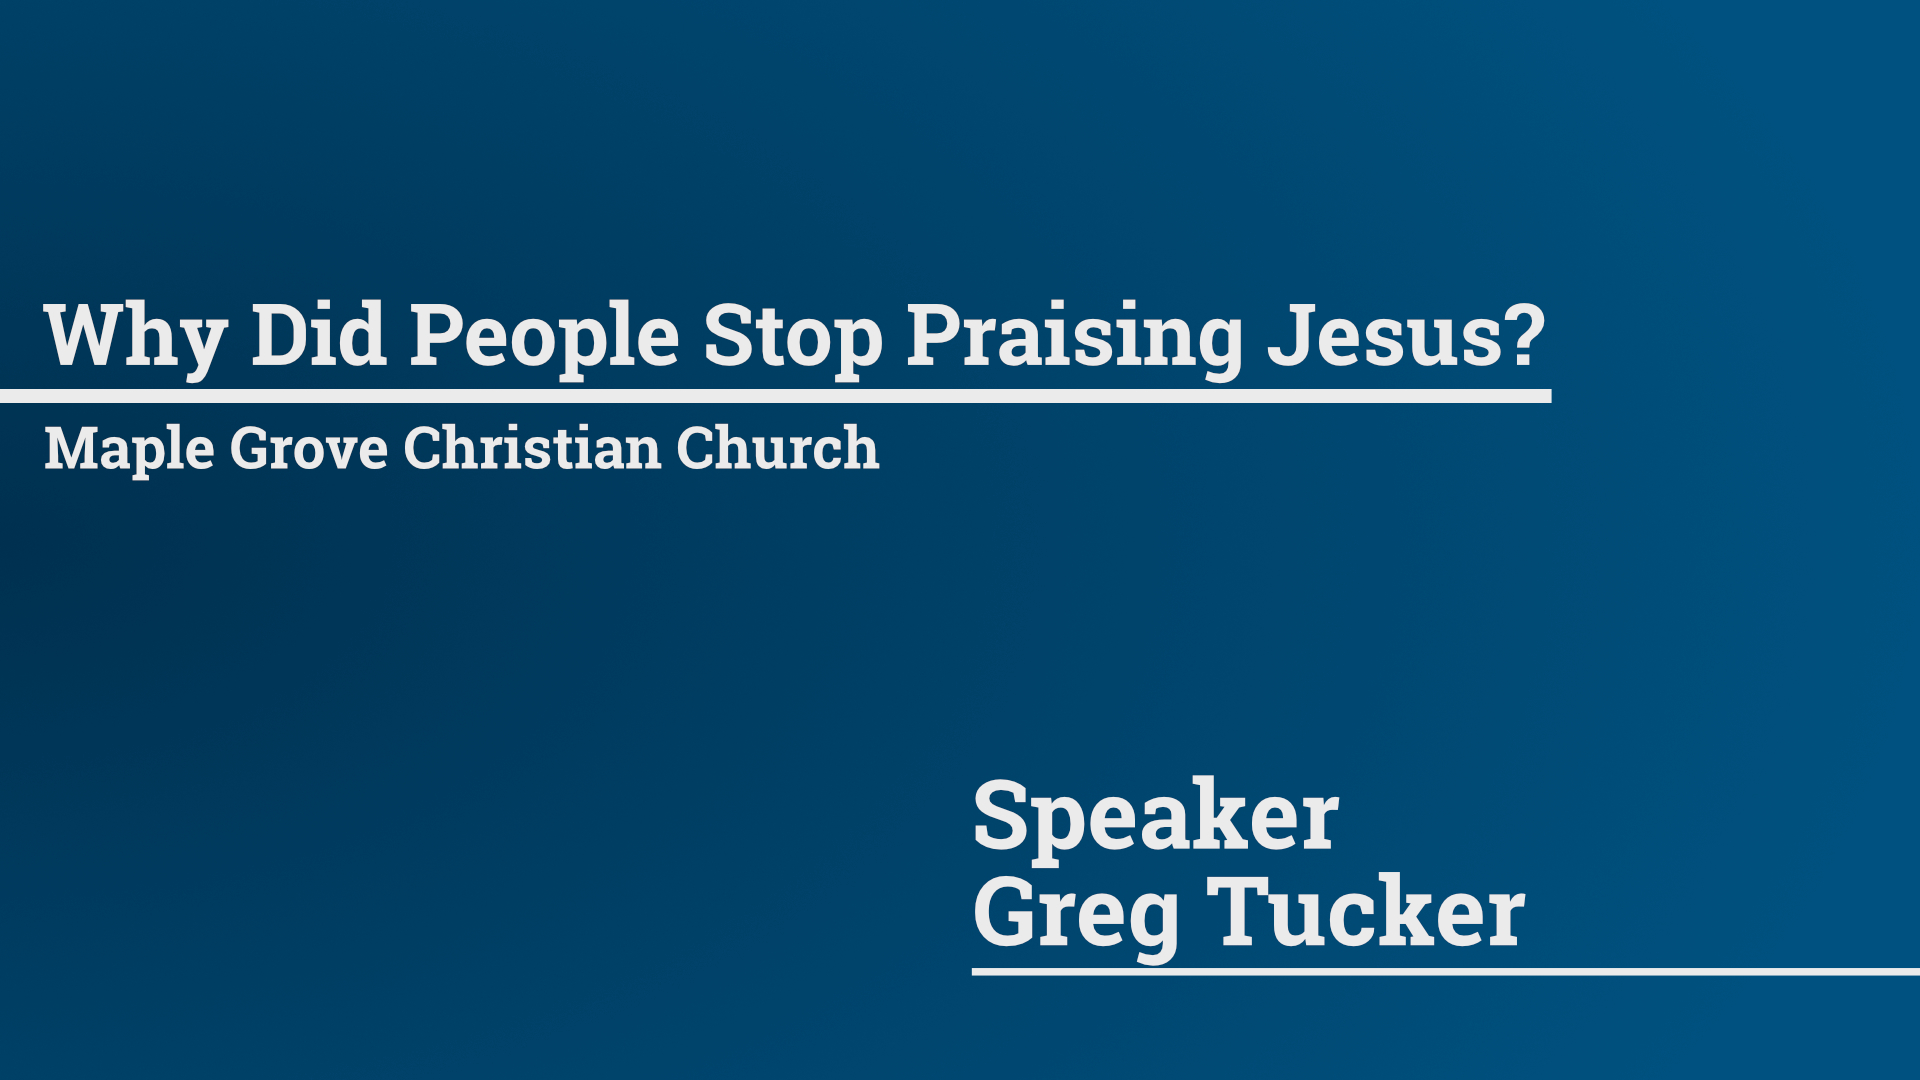 Why Did People Stop Praising Jesus? • March 29, 2015